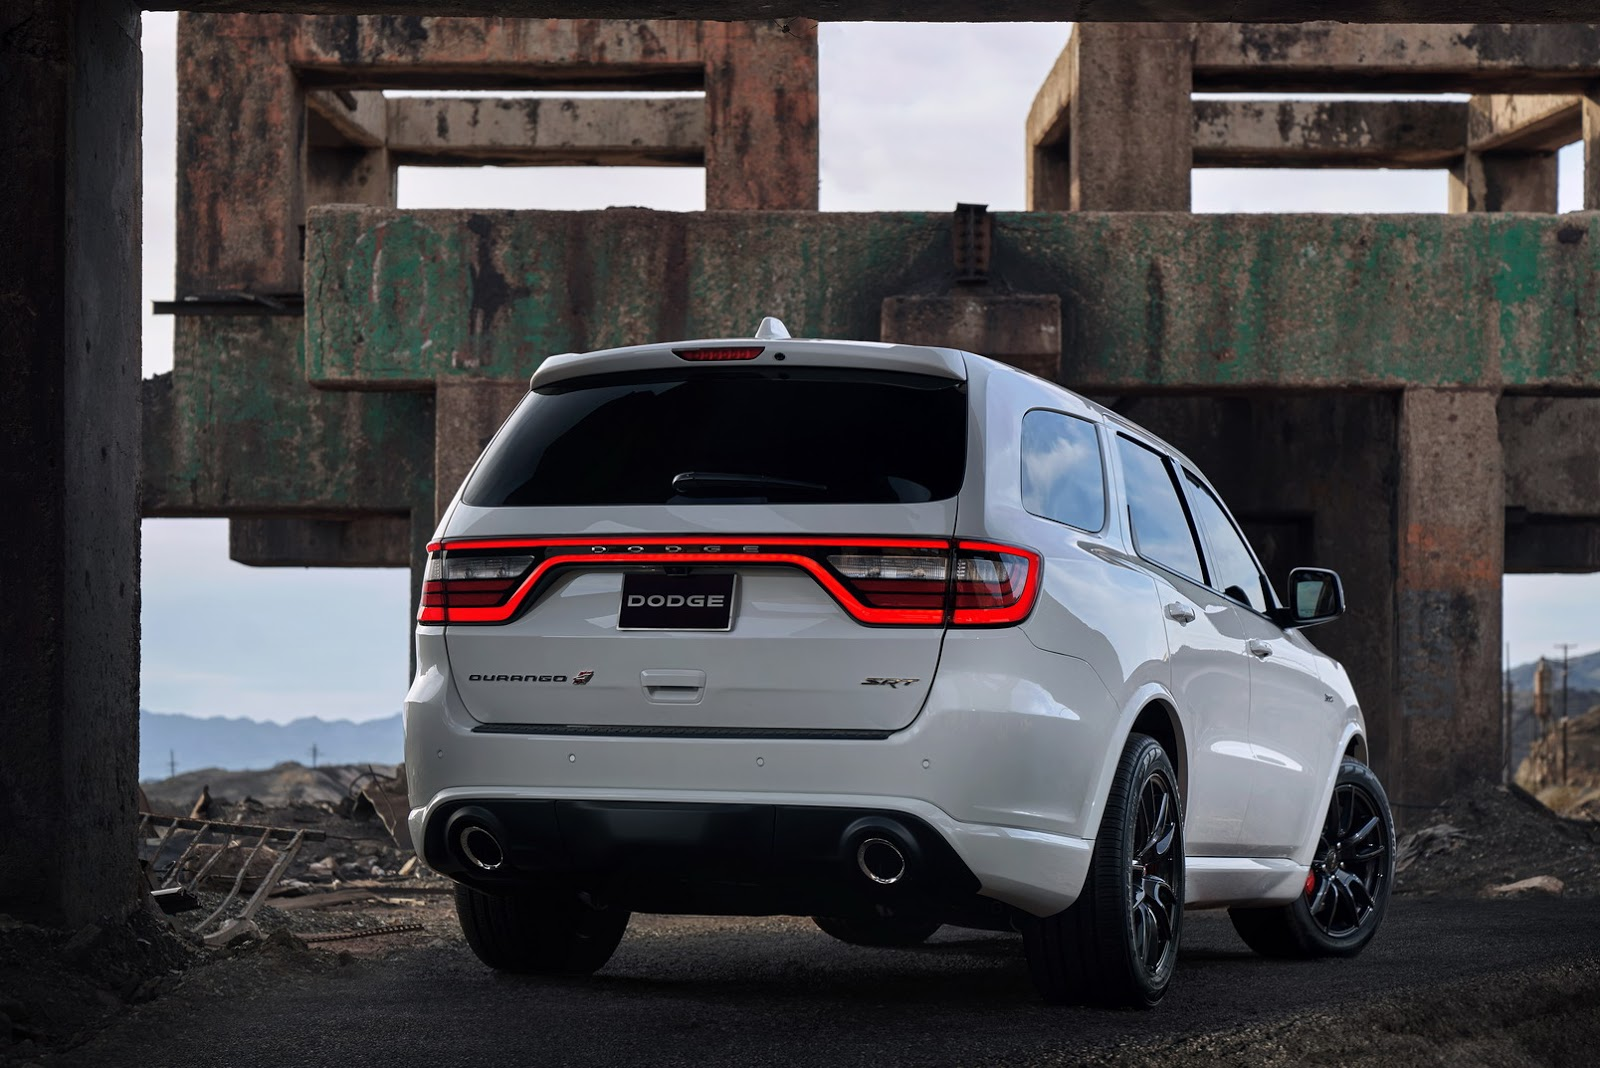 2018 Dodge Durango Srt Is America S Quickest Three Row Suv